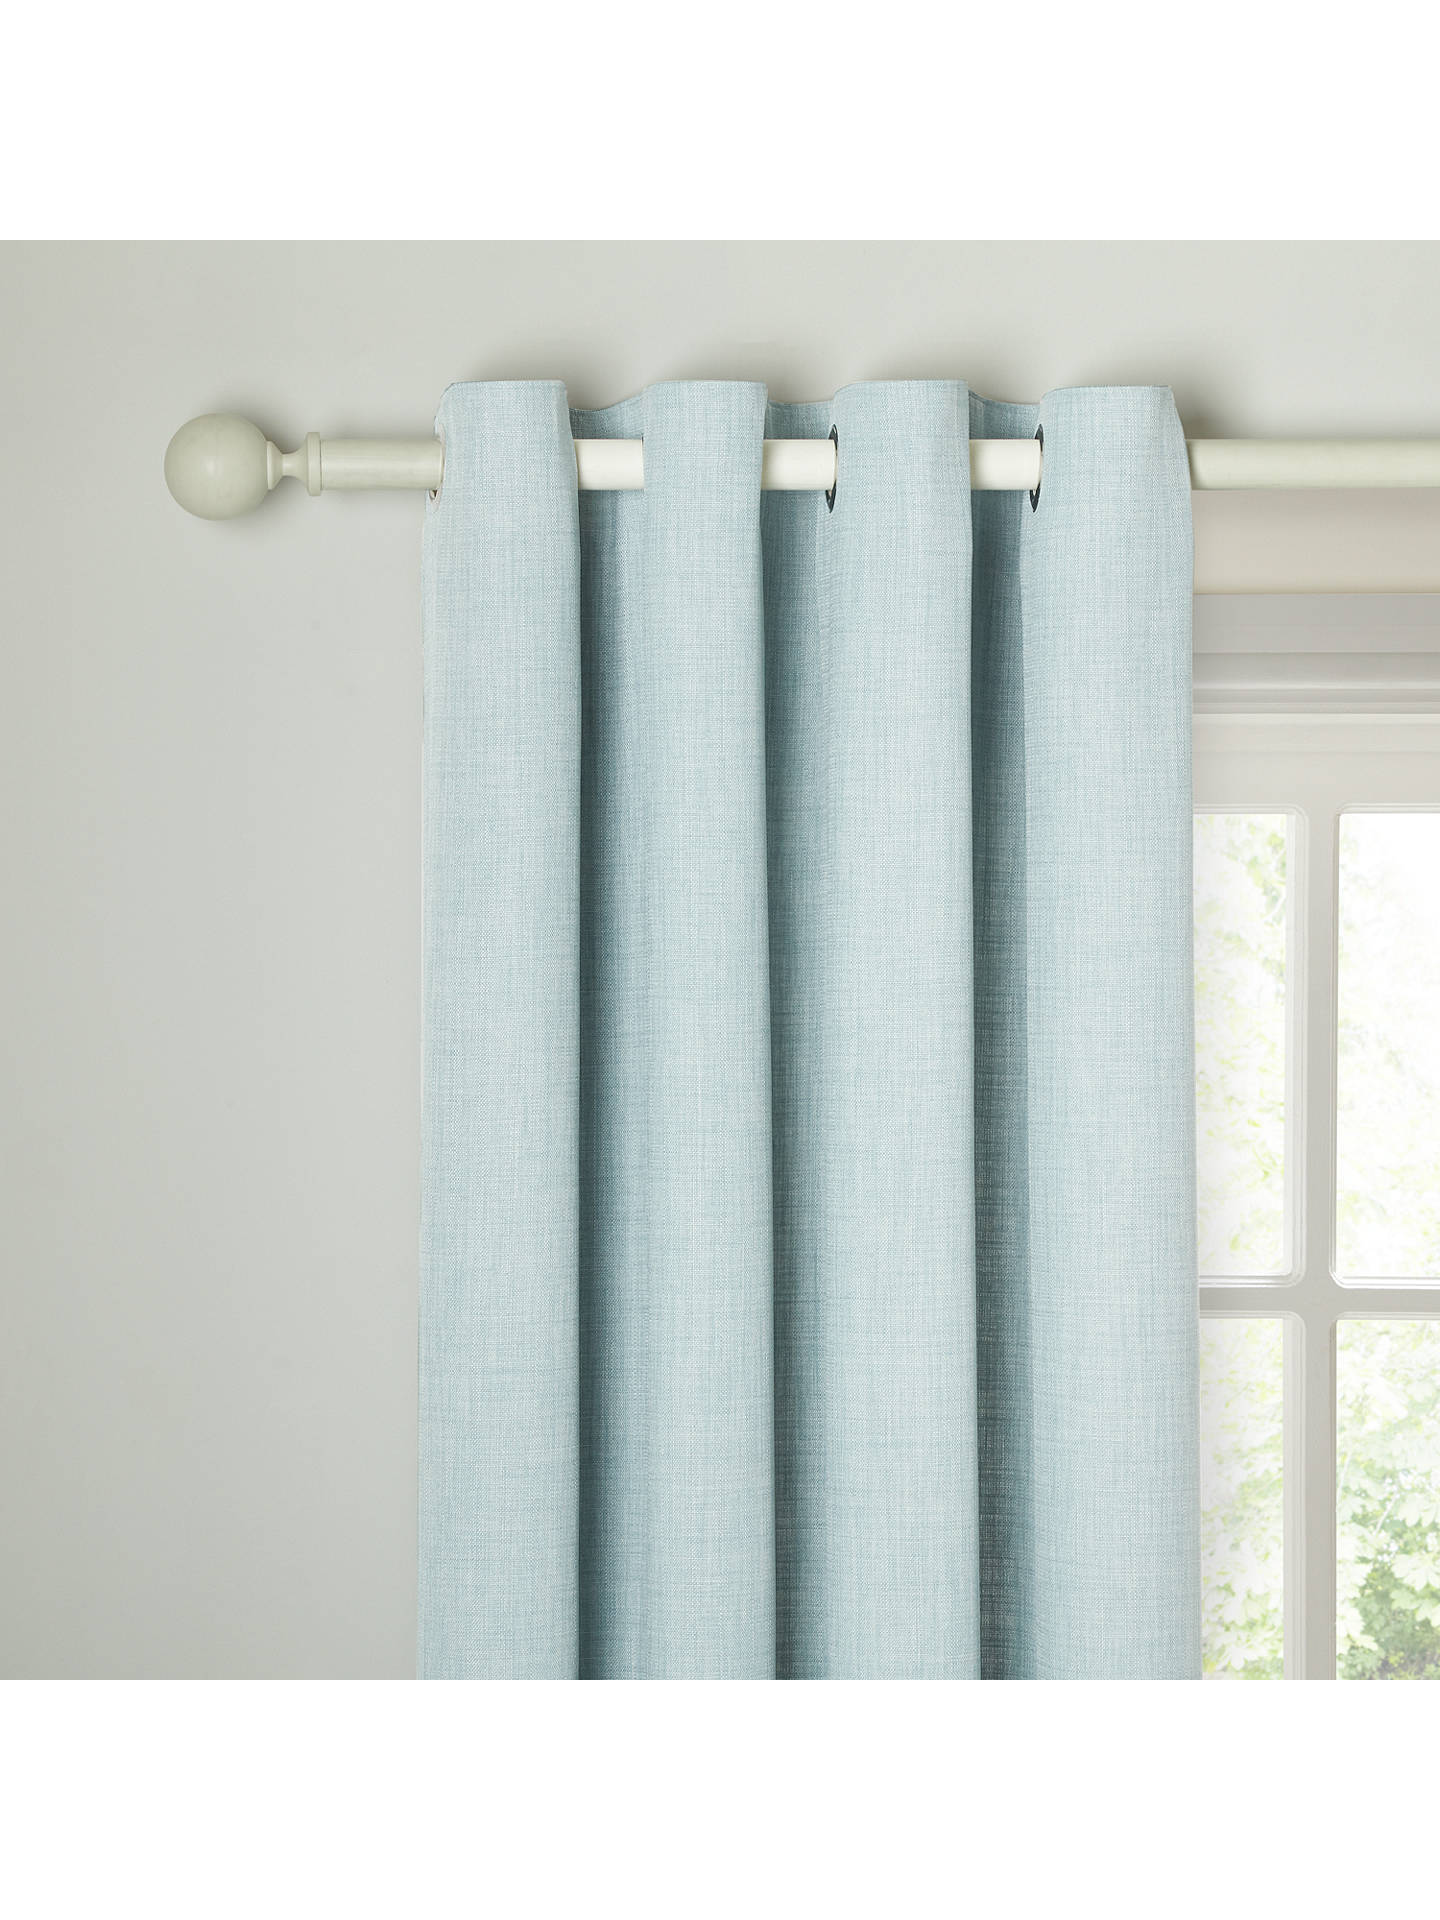 Buy John Lewis & Partners Barathea Pair Lined Eyelet Curtains, Duck Egg, W117 x Drop 228cm Online at johnlewis.com